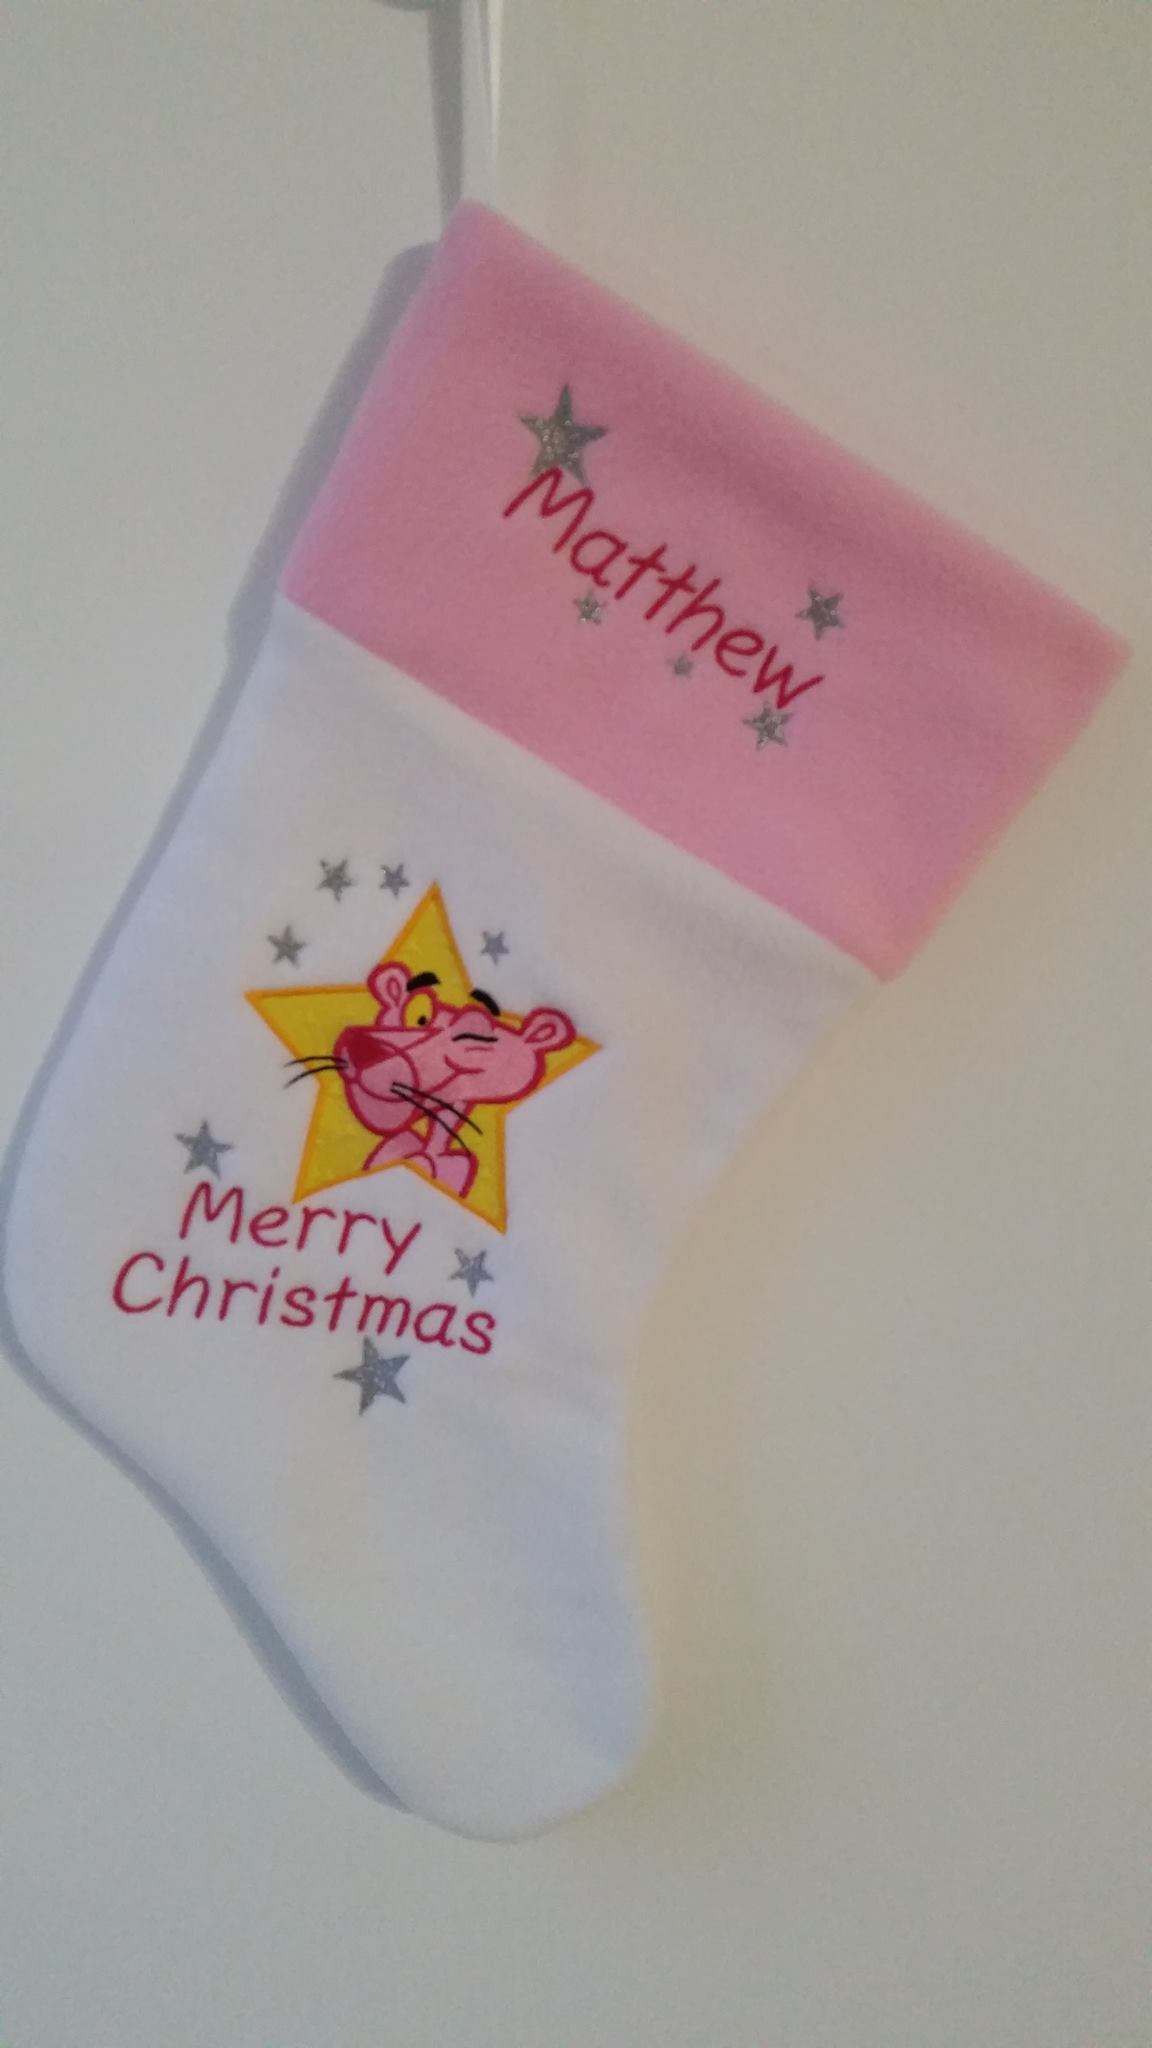 Pink Panther embroidered on Christmas sock